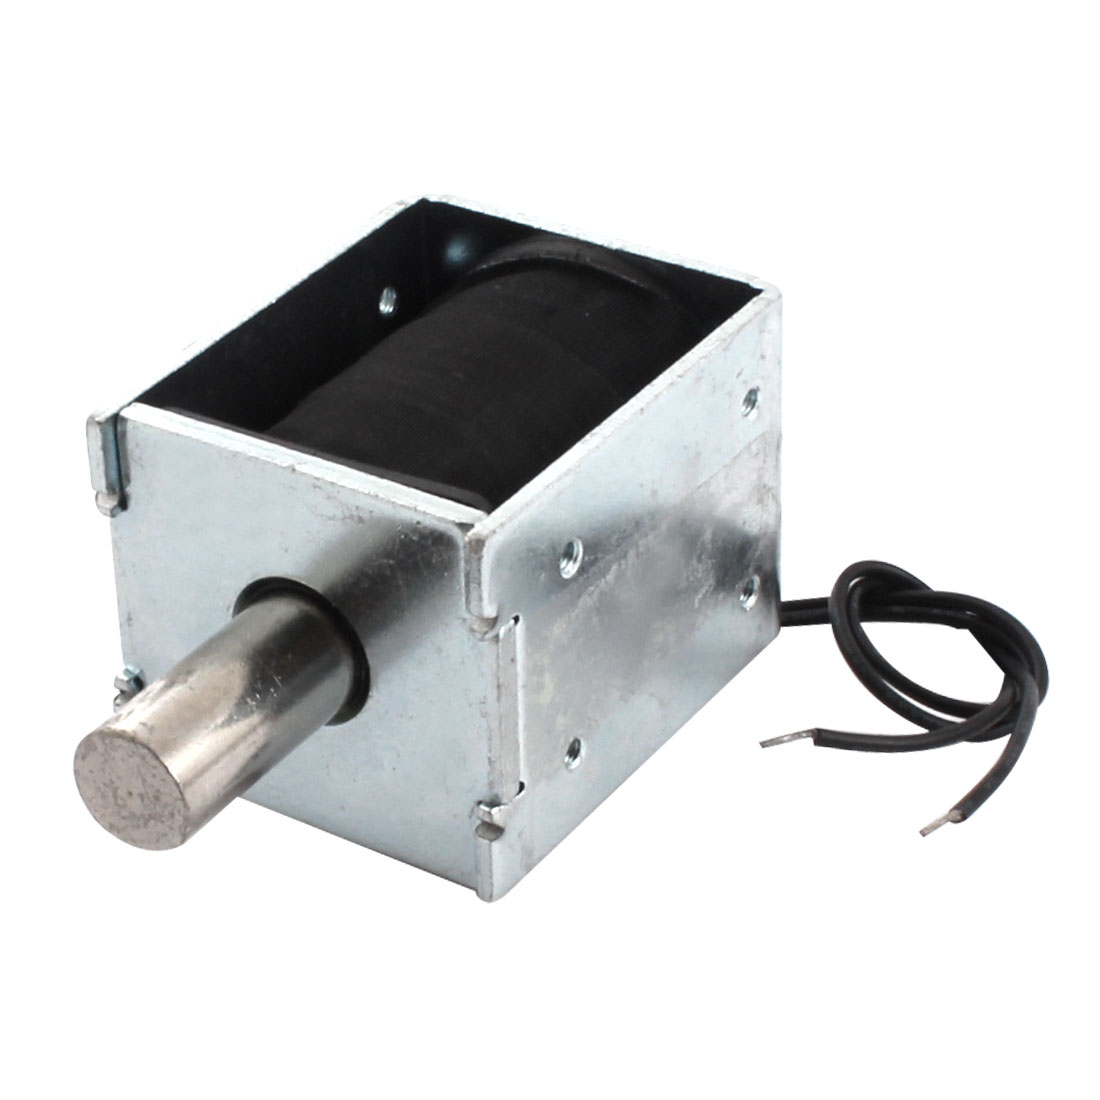 AC 220V 1.11A 10mm Stroke 1200g Force Open Frame Linear Motion Push Pull Type Solenoid Electromagnet Actuator